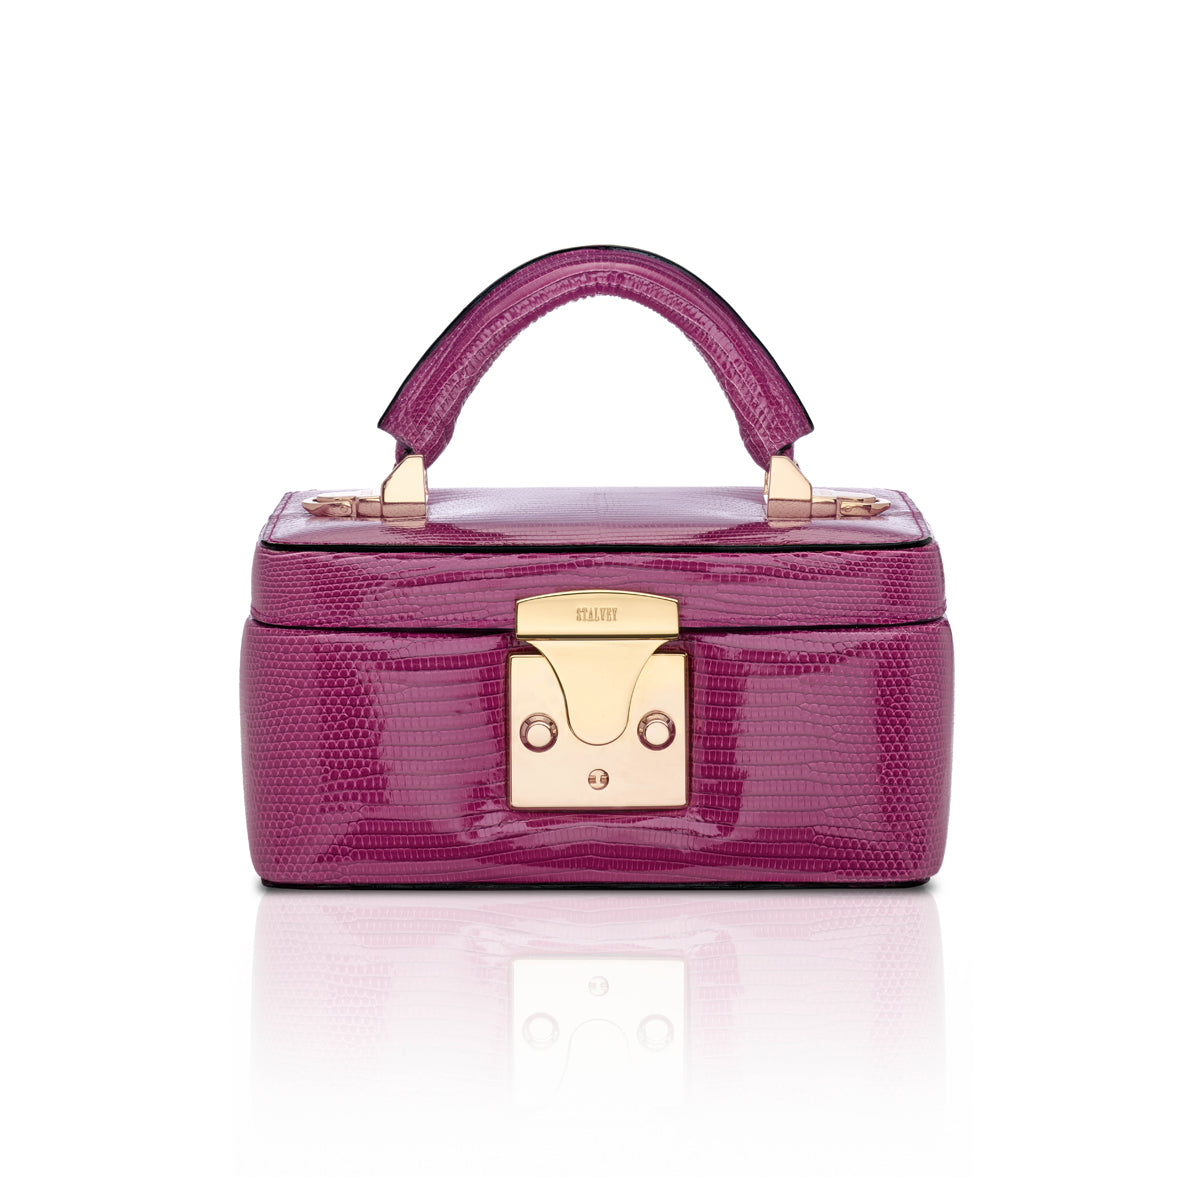 Beauty Case 1.7 Mini - Magenta Lizard